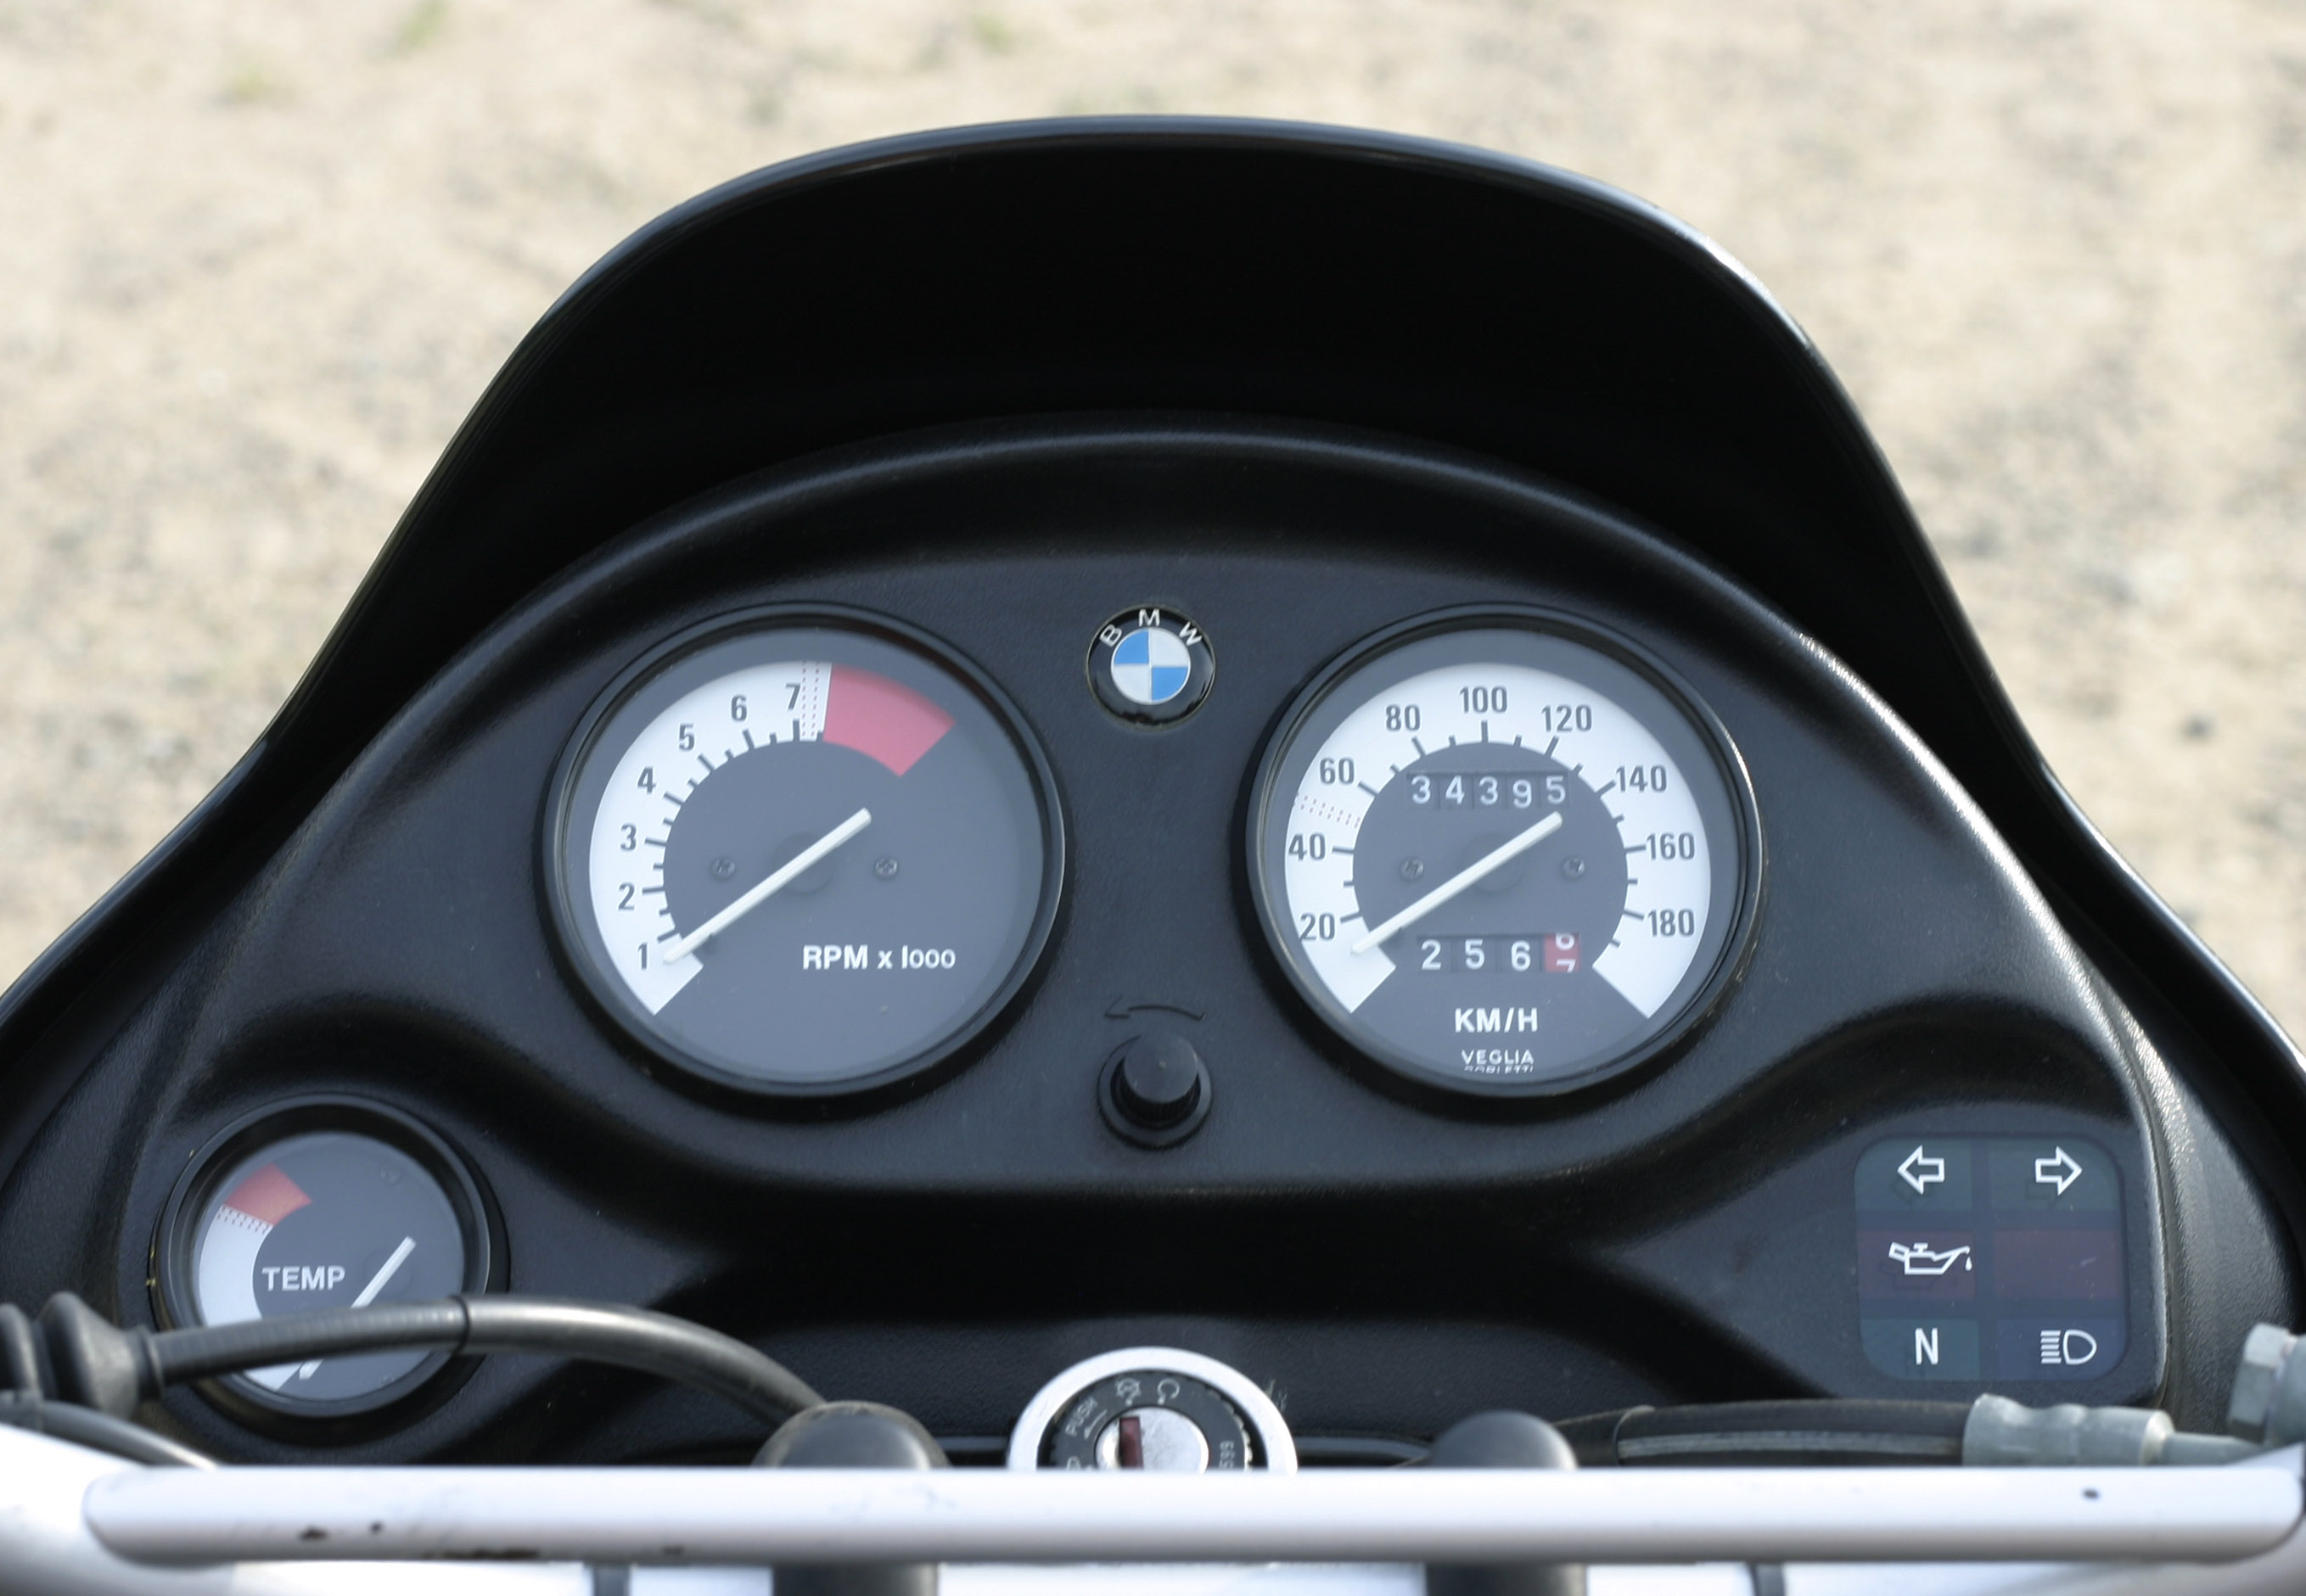 Motorcycle Instrument Panel : File motorcycle bmw f st instrument panel g